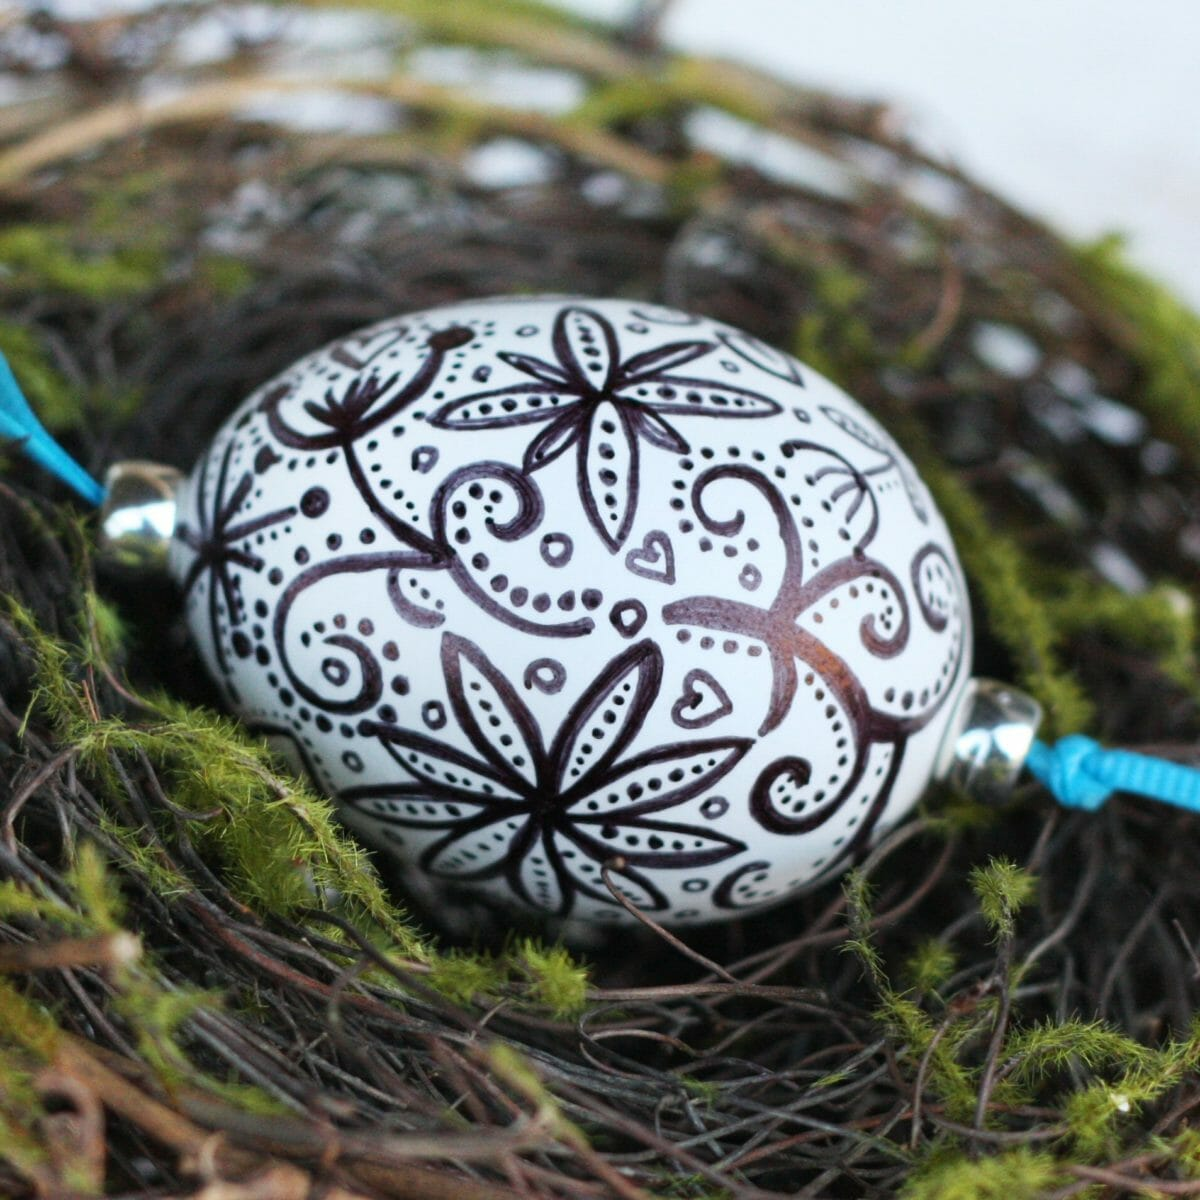 How To: Make Blown Egg Ornaments